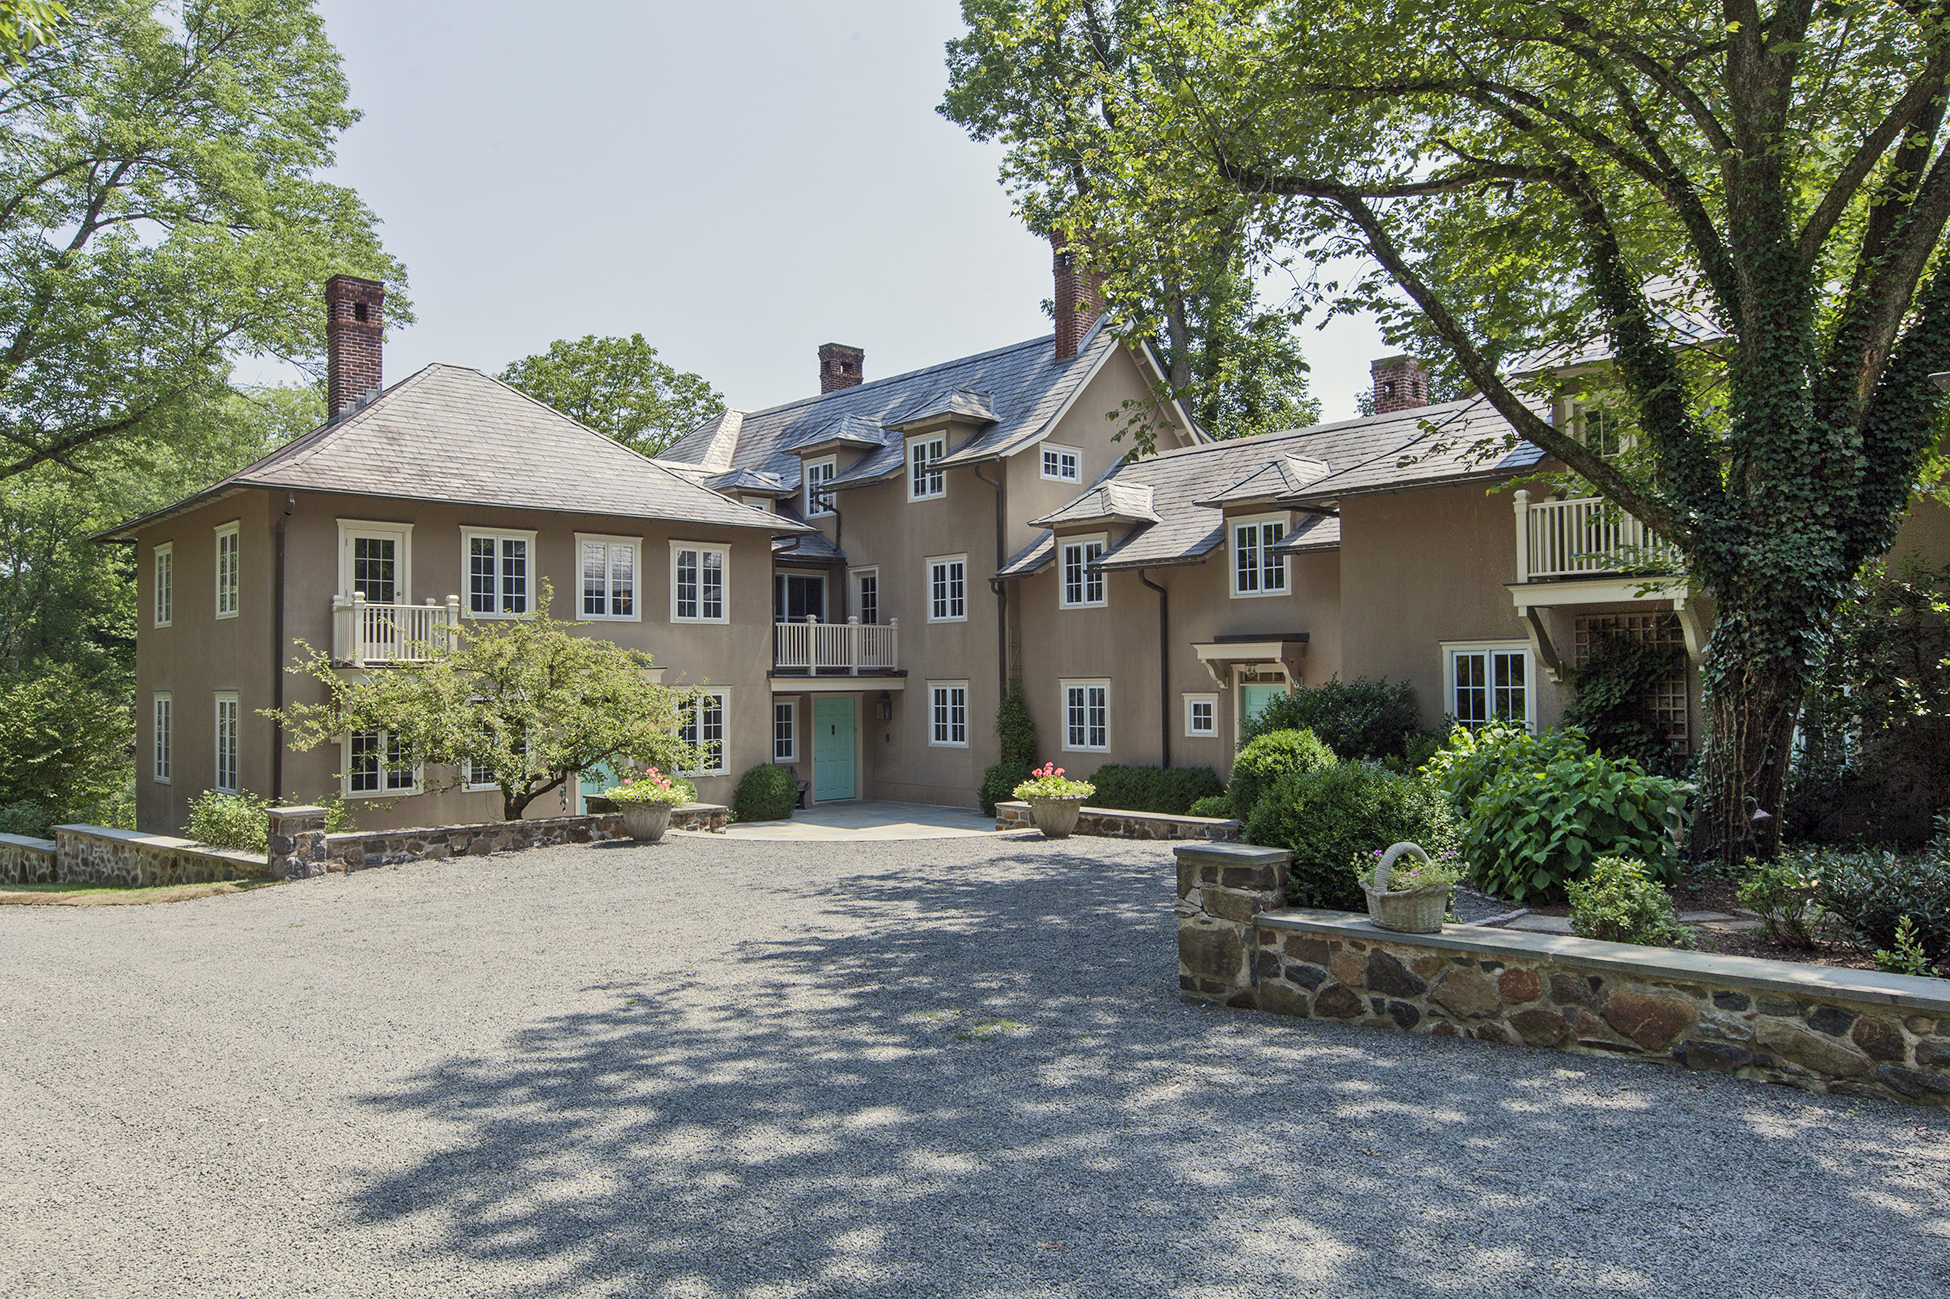 Maison unifamiliale pour l Vente à Country Estate in a Spectacular Setting 906 Great Road Princeton, New Jersey 08540 États-Unis